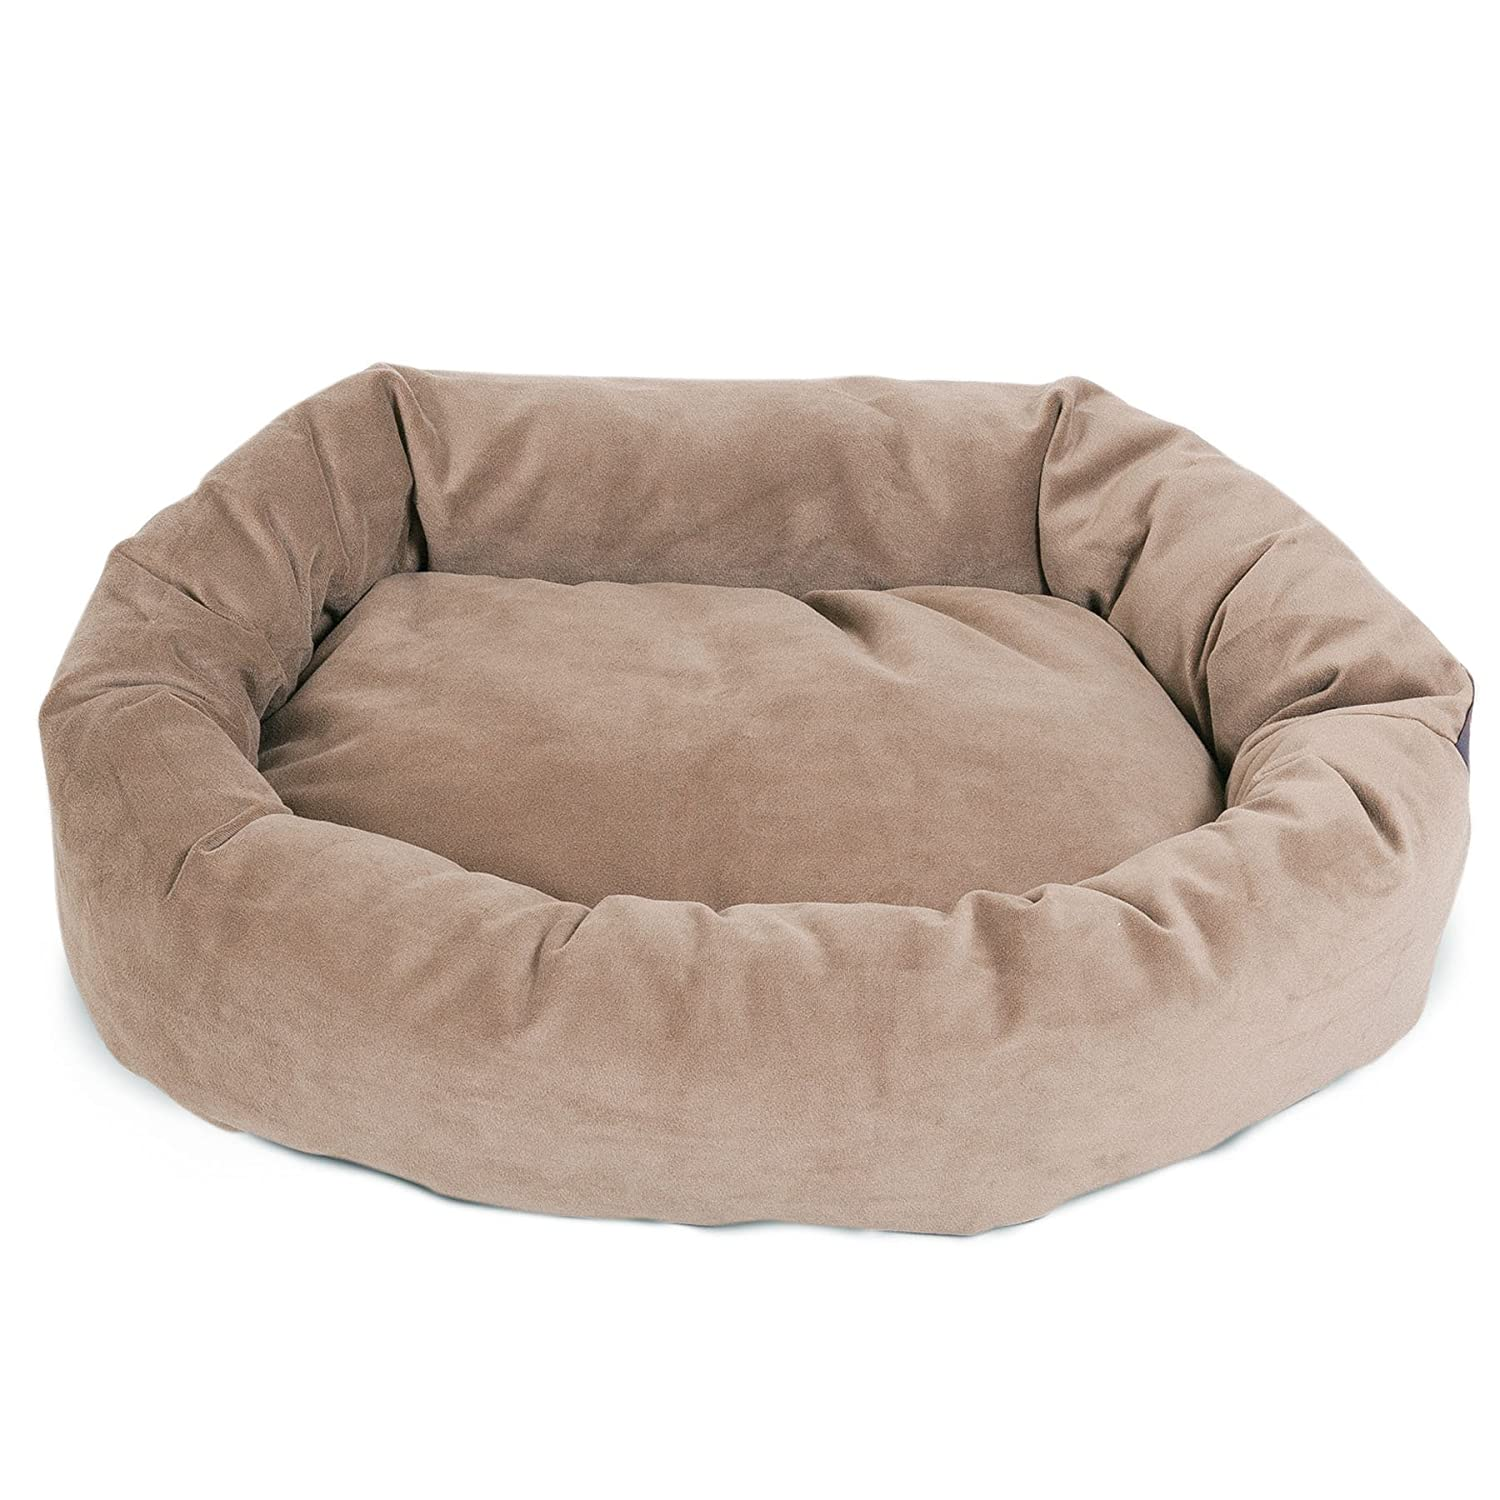 Majestic Pet Suede Dog Bed Products